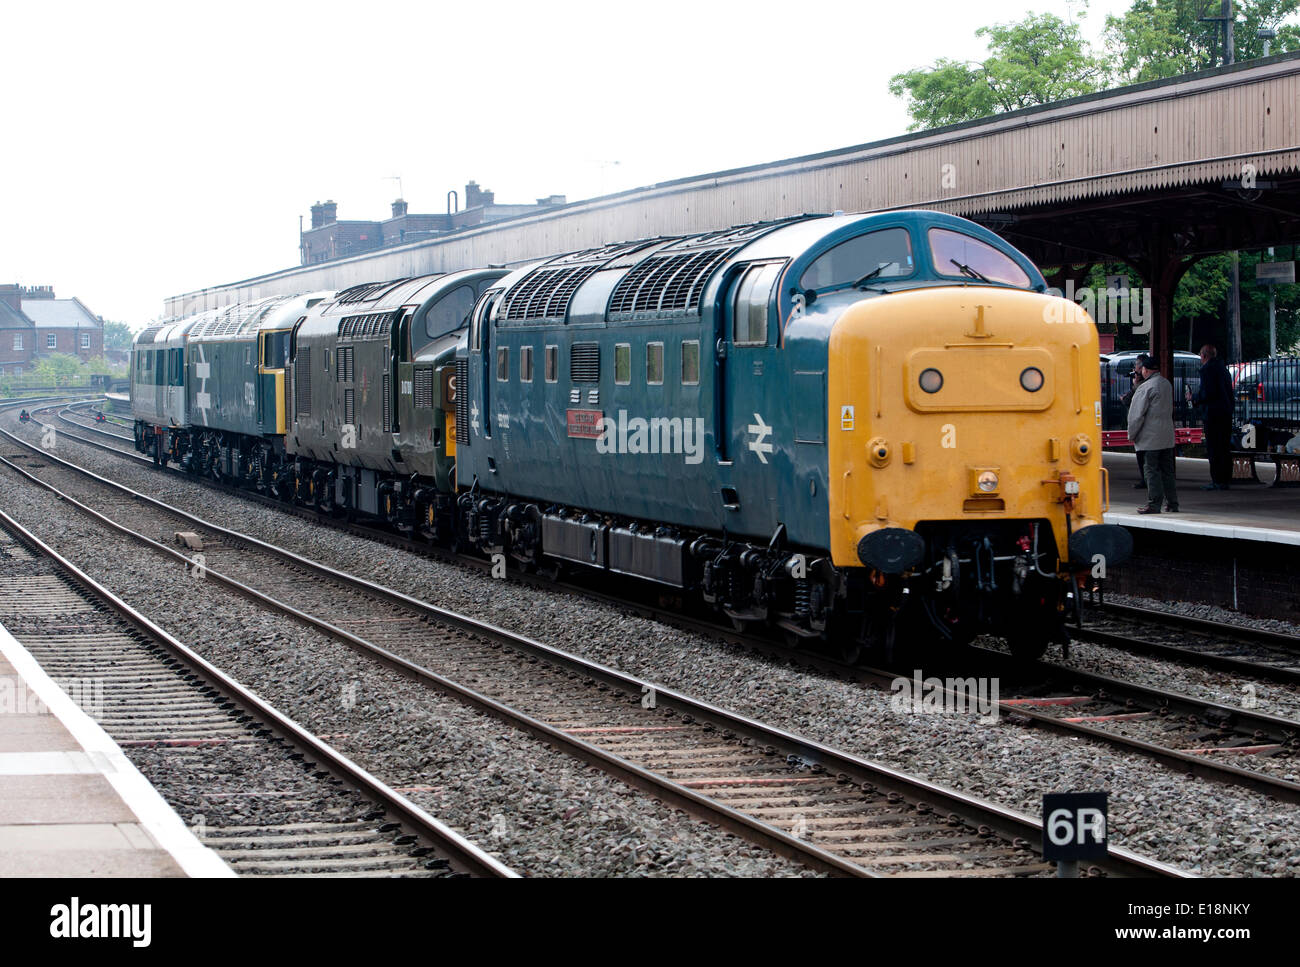 Leamington Spa, Warwickshire, England, UK. 27th May 2014. A trainspotter`s delight as a Deltic locomotive 'The King`s Own Yorkshire Light Infantry' heads a cavalcade of preserved diesel locomotives at Leamington Spa away from the Didcot Diesel Gala which was held at the weekend. Credit:  Colin Underhill/Alamy Live News - Stock Image